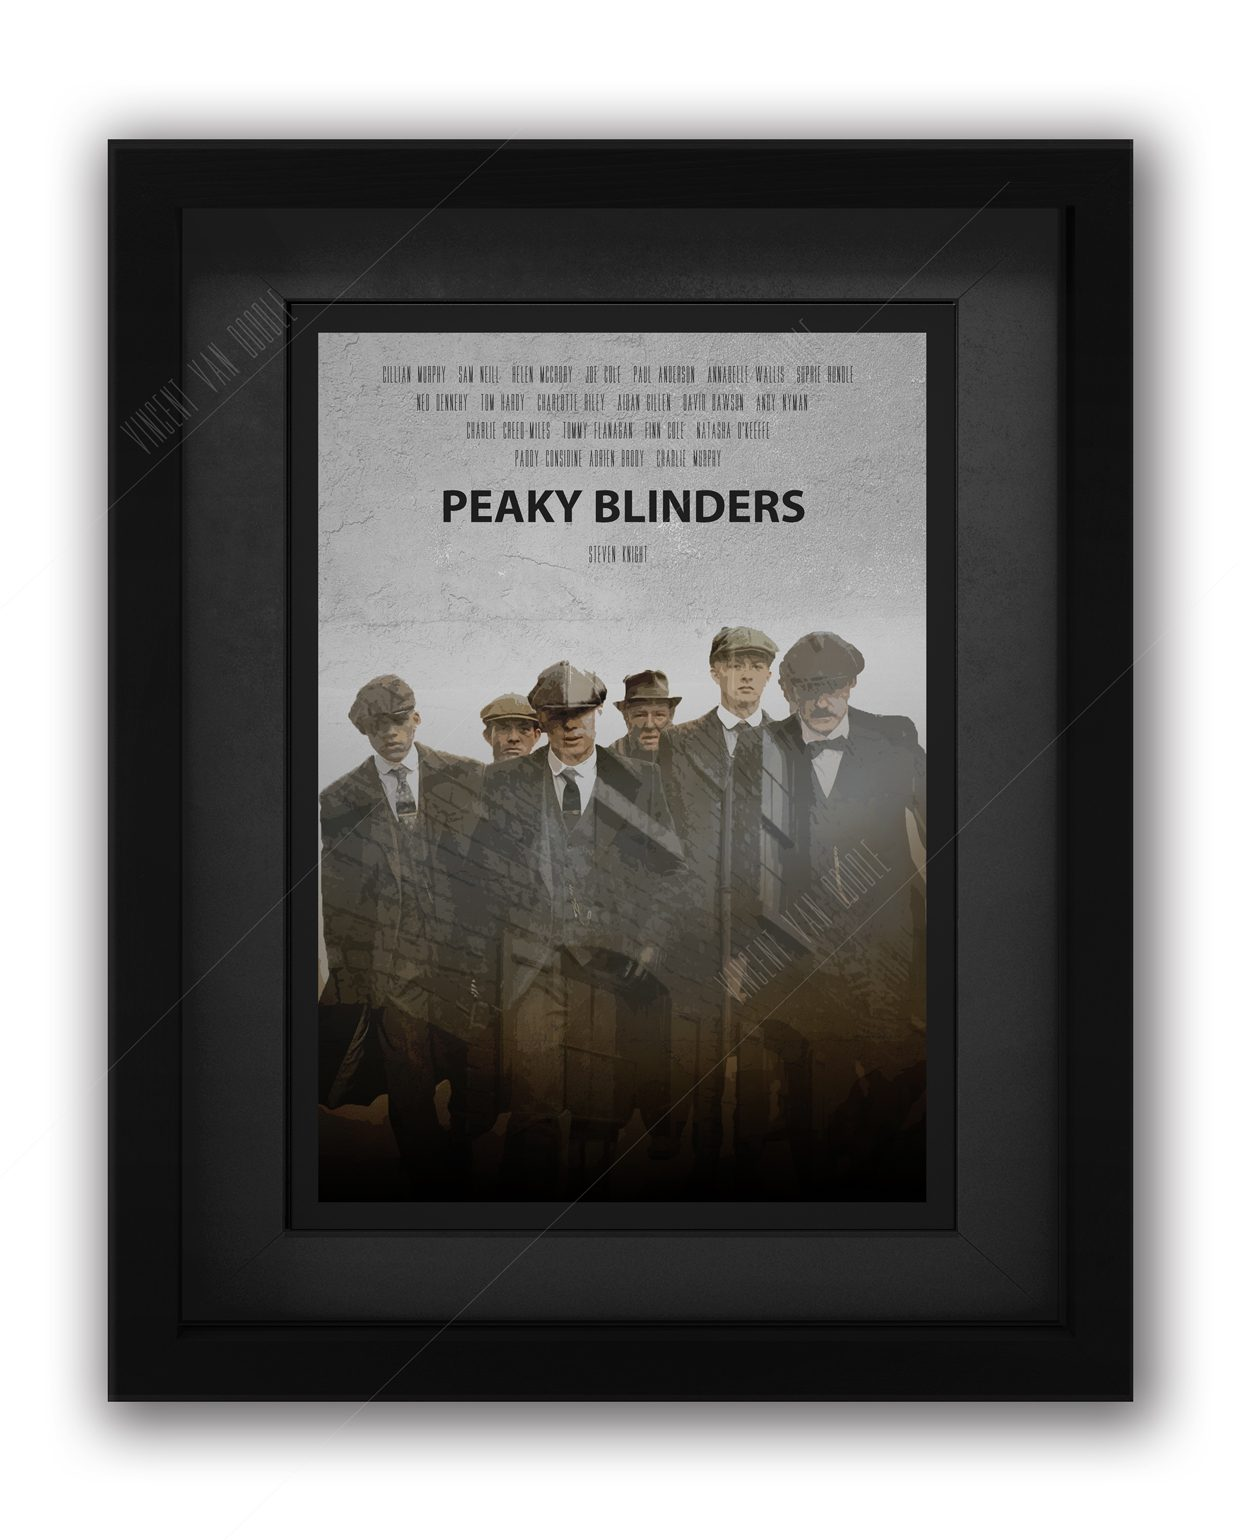 PEaky-Blinders-Framed-Black